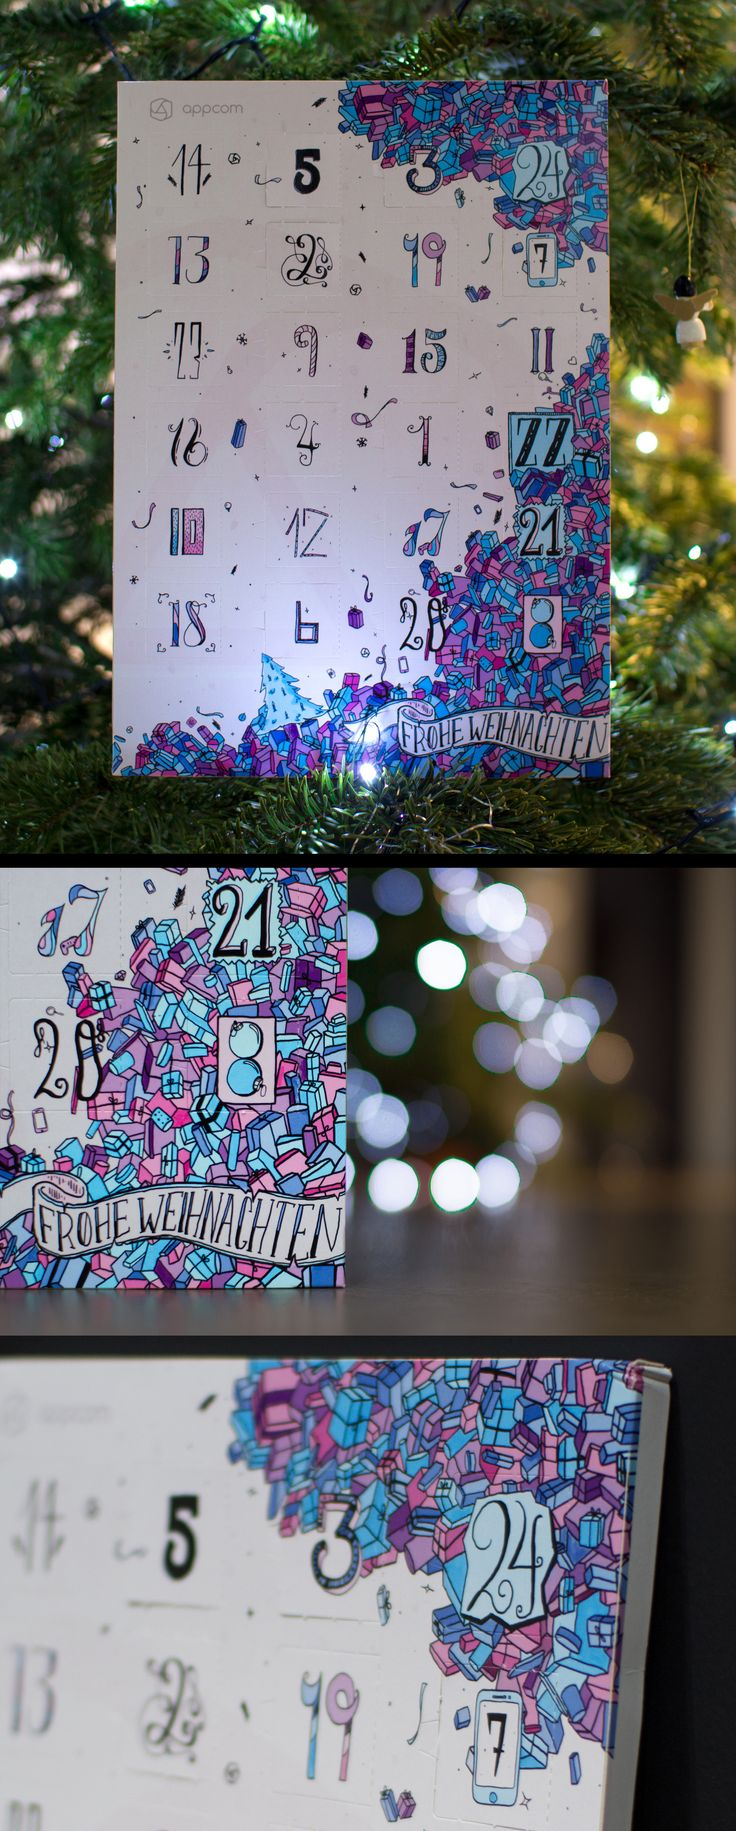 advent calendar | blue magenta |merry christmas - frohe weihnachten | chocolate | for our customers |appcom interactive & marketing